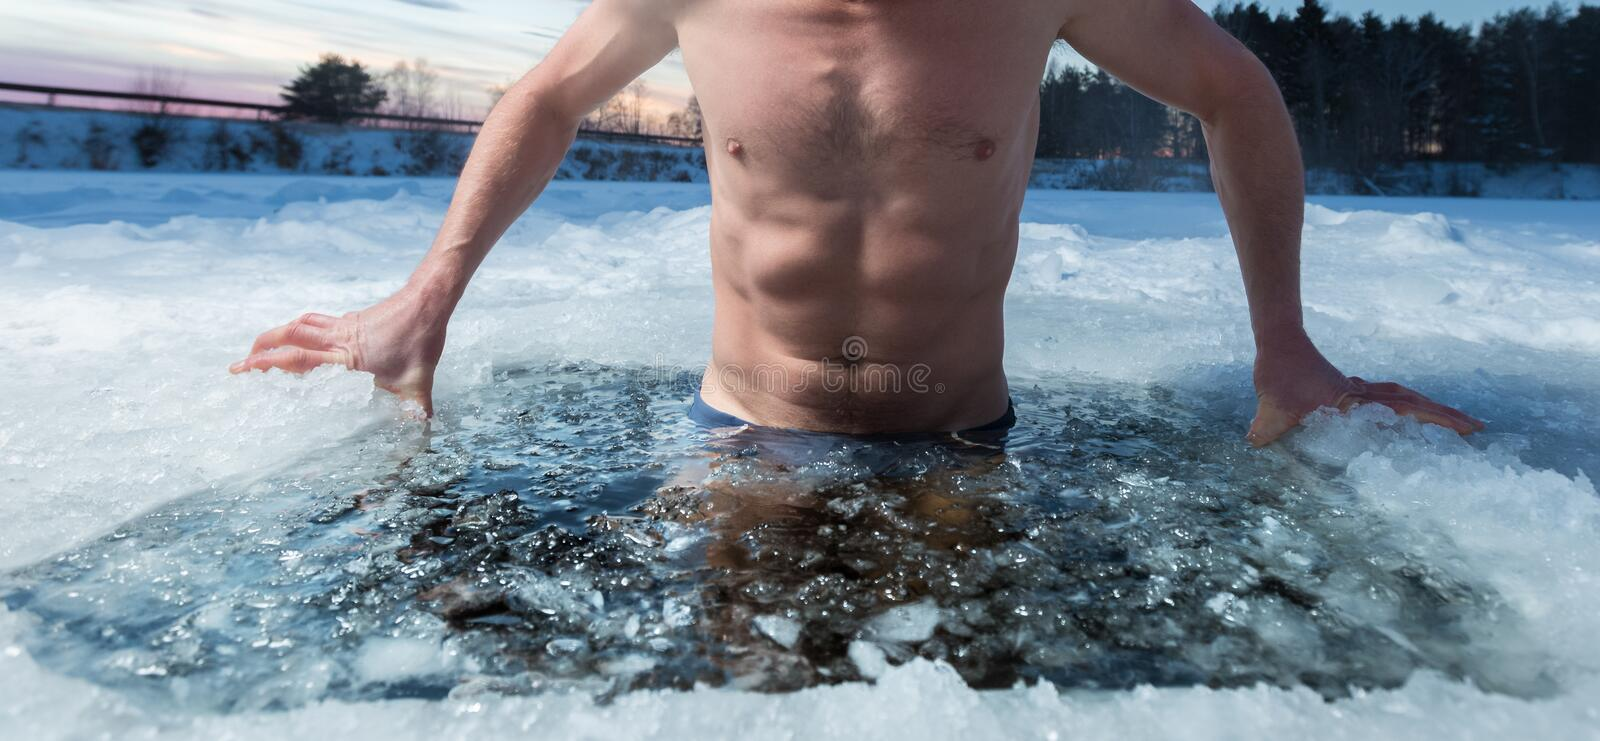 Ice hole swimming stock images